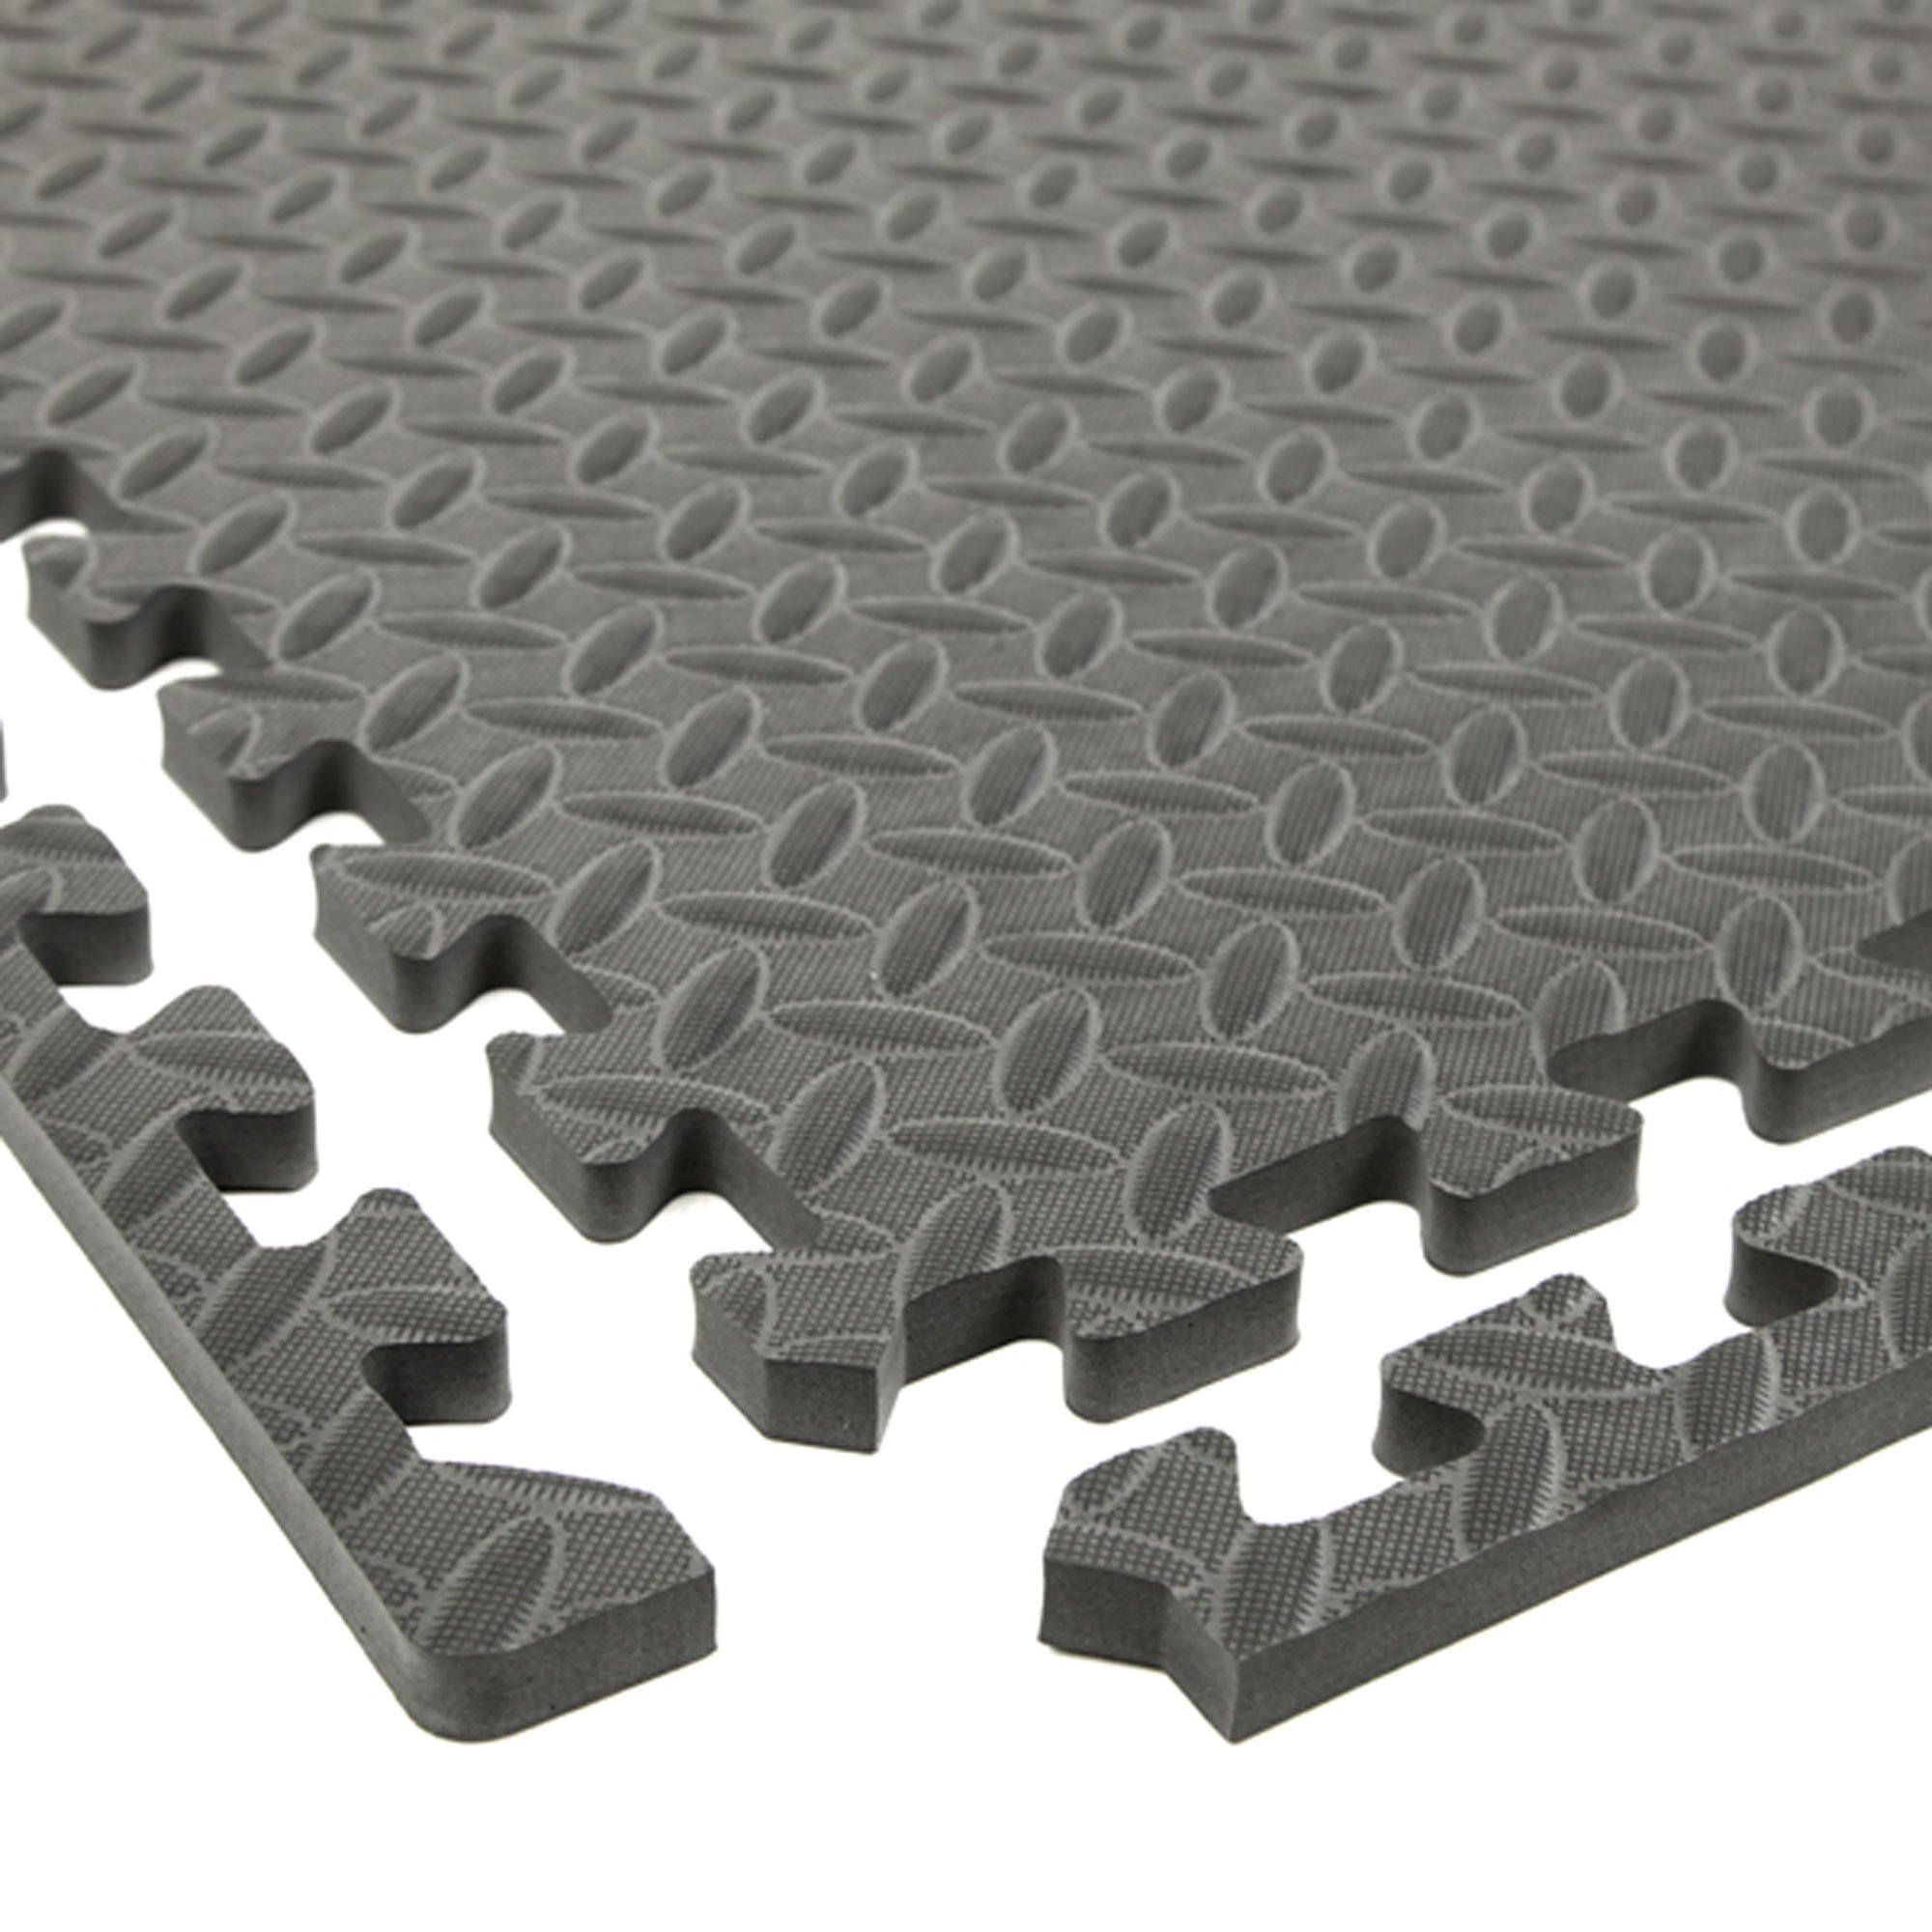 Incstores Diamond Soft Extra Thick Anti Fatigue Interlocking Foam Tiles - 2ft x 2ft Tiles Ideal for Laundry Room Flooring, Kitchen Mats, Exercise Mats, and Garage Mats (Grey, 36 Tile Pack, 144 Sqft) by IncStores (Image #1)